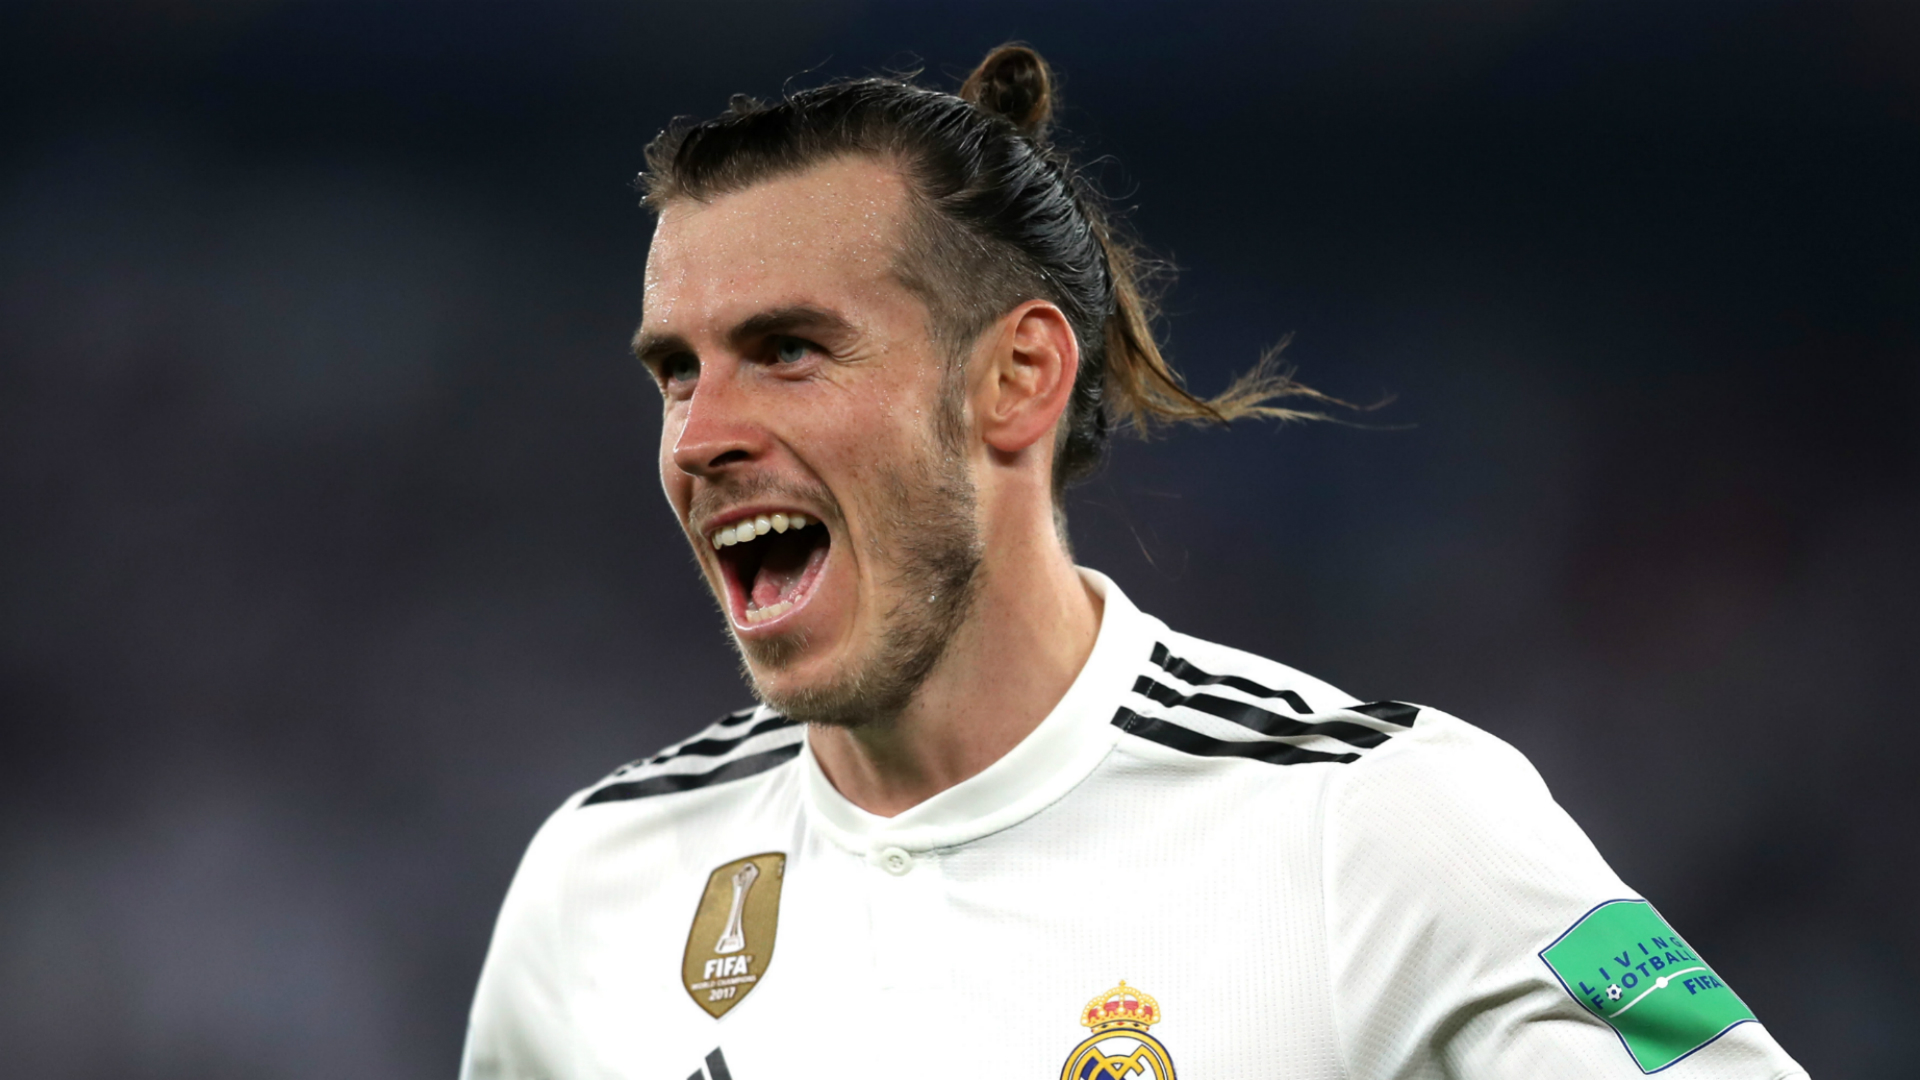 Bale starts for Real Madrid with Courtois on the bench against Alaves